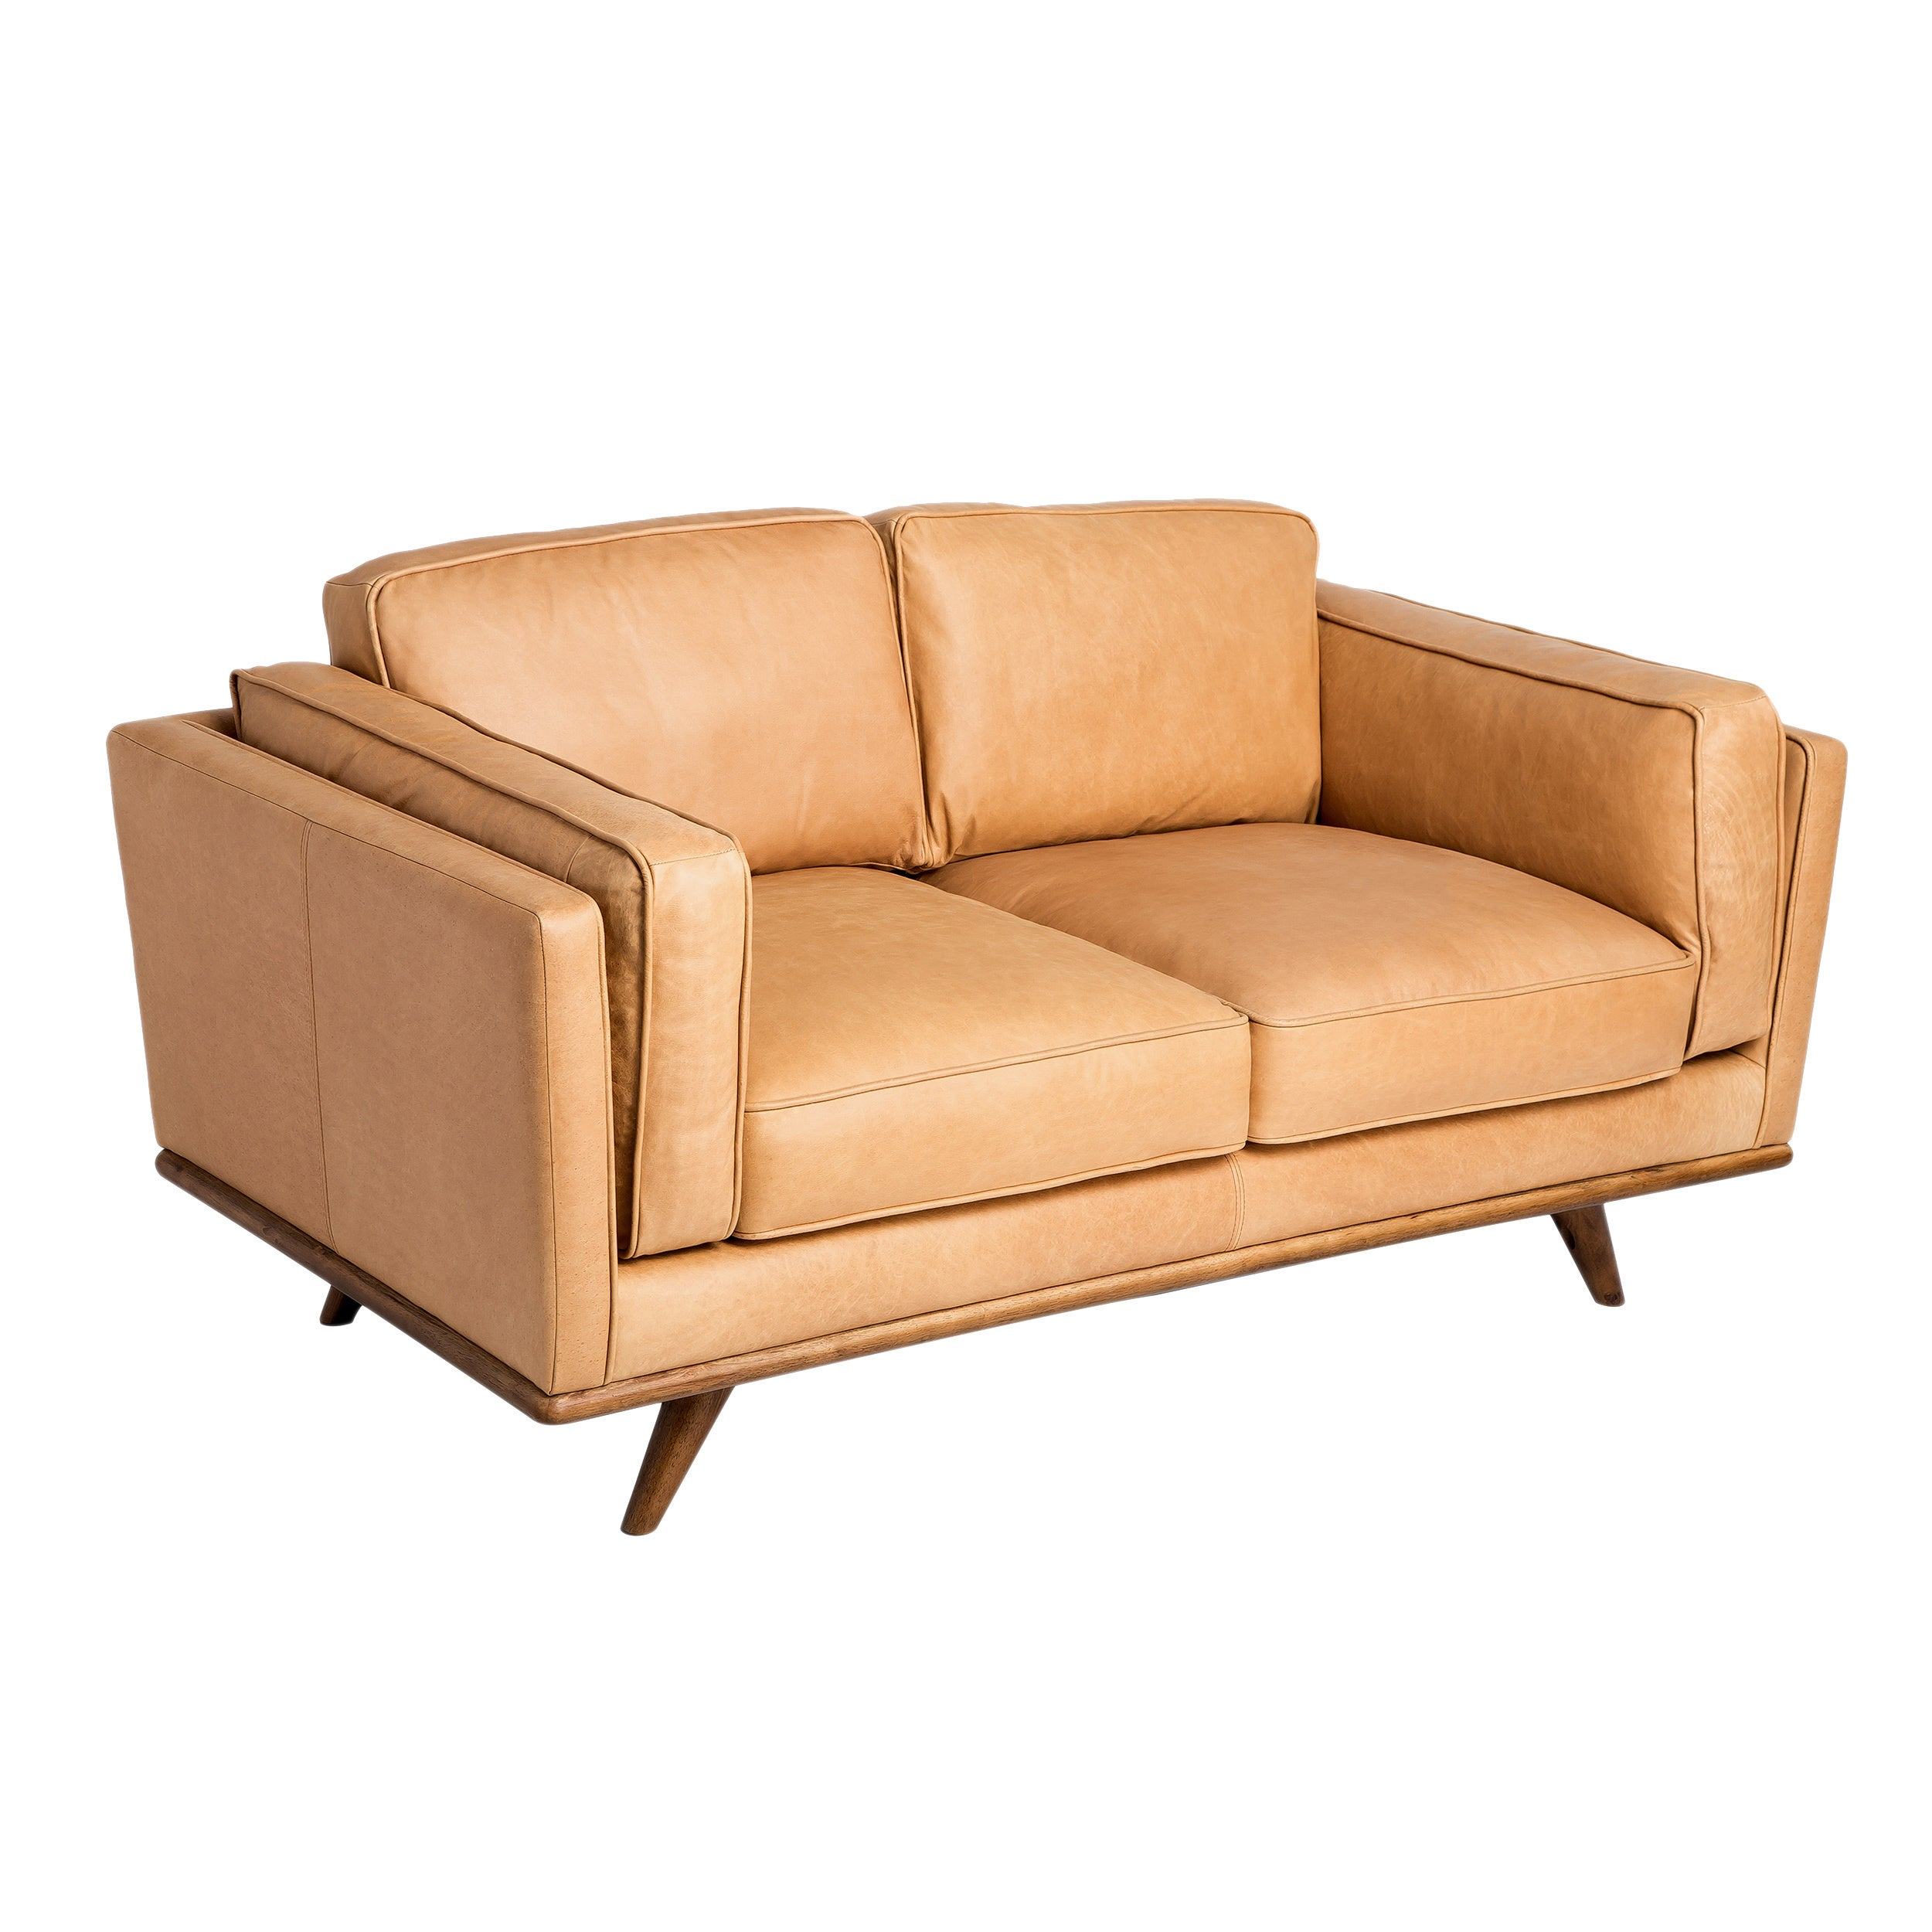 f loveseat style french hermes tan at buffalo loveseats leather b seating master id furniture